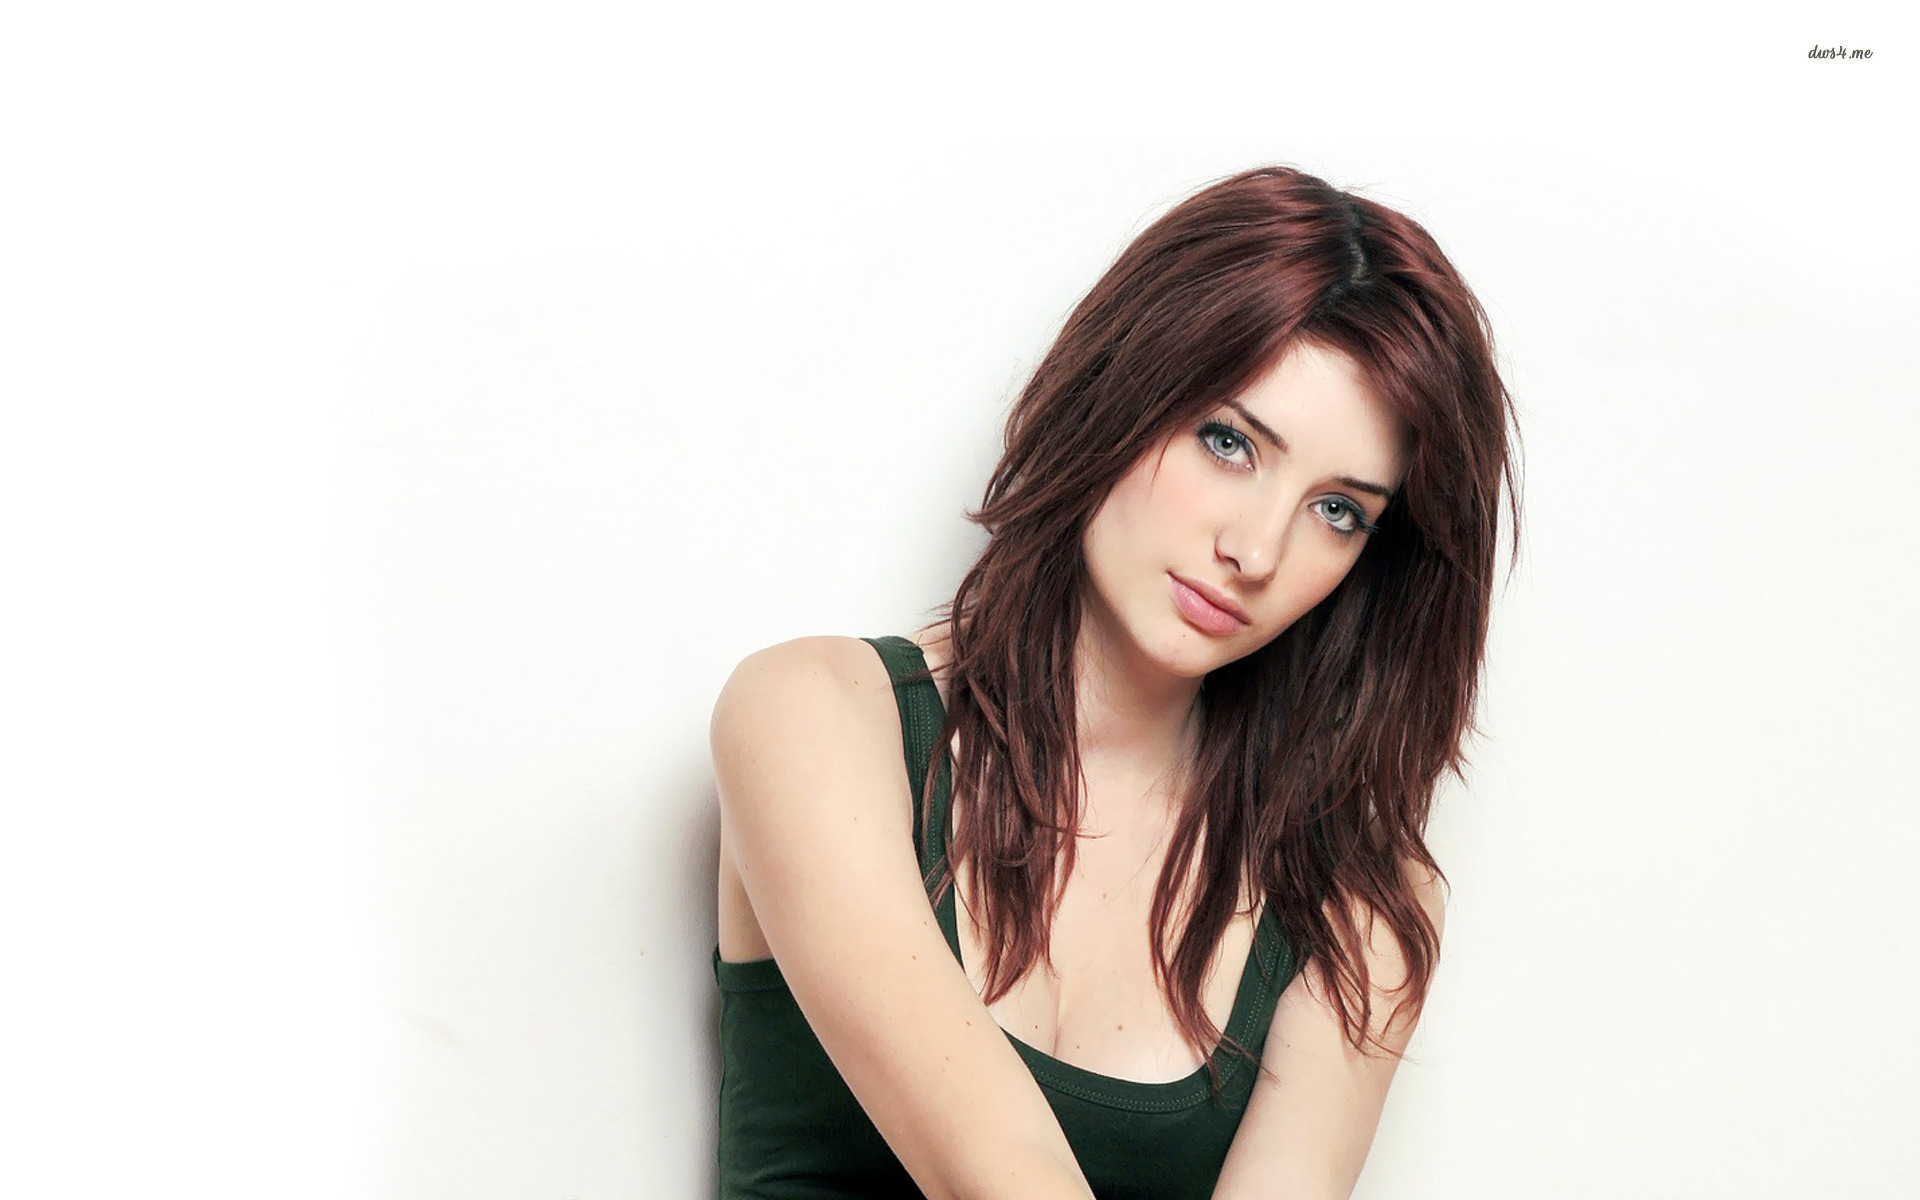 ... Susan Coffey wallpaper 1920x1200 ...